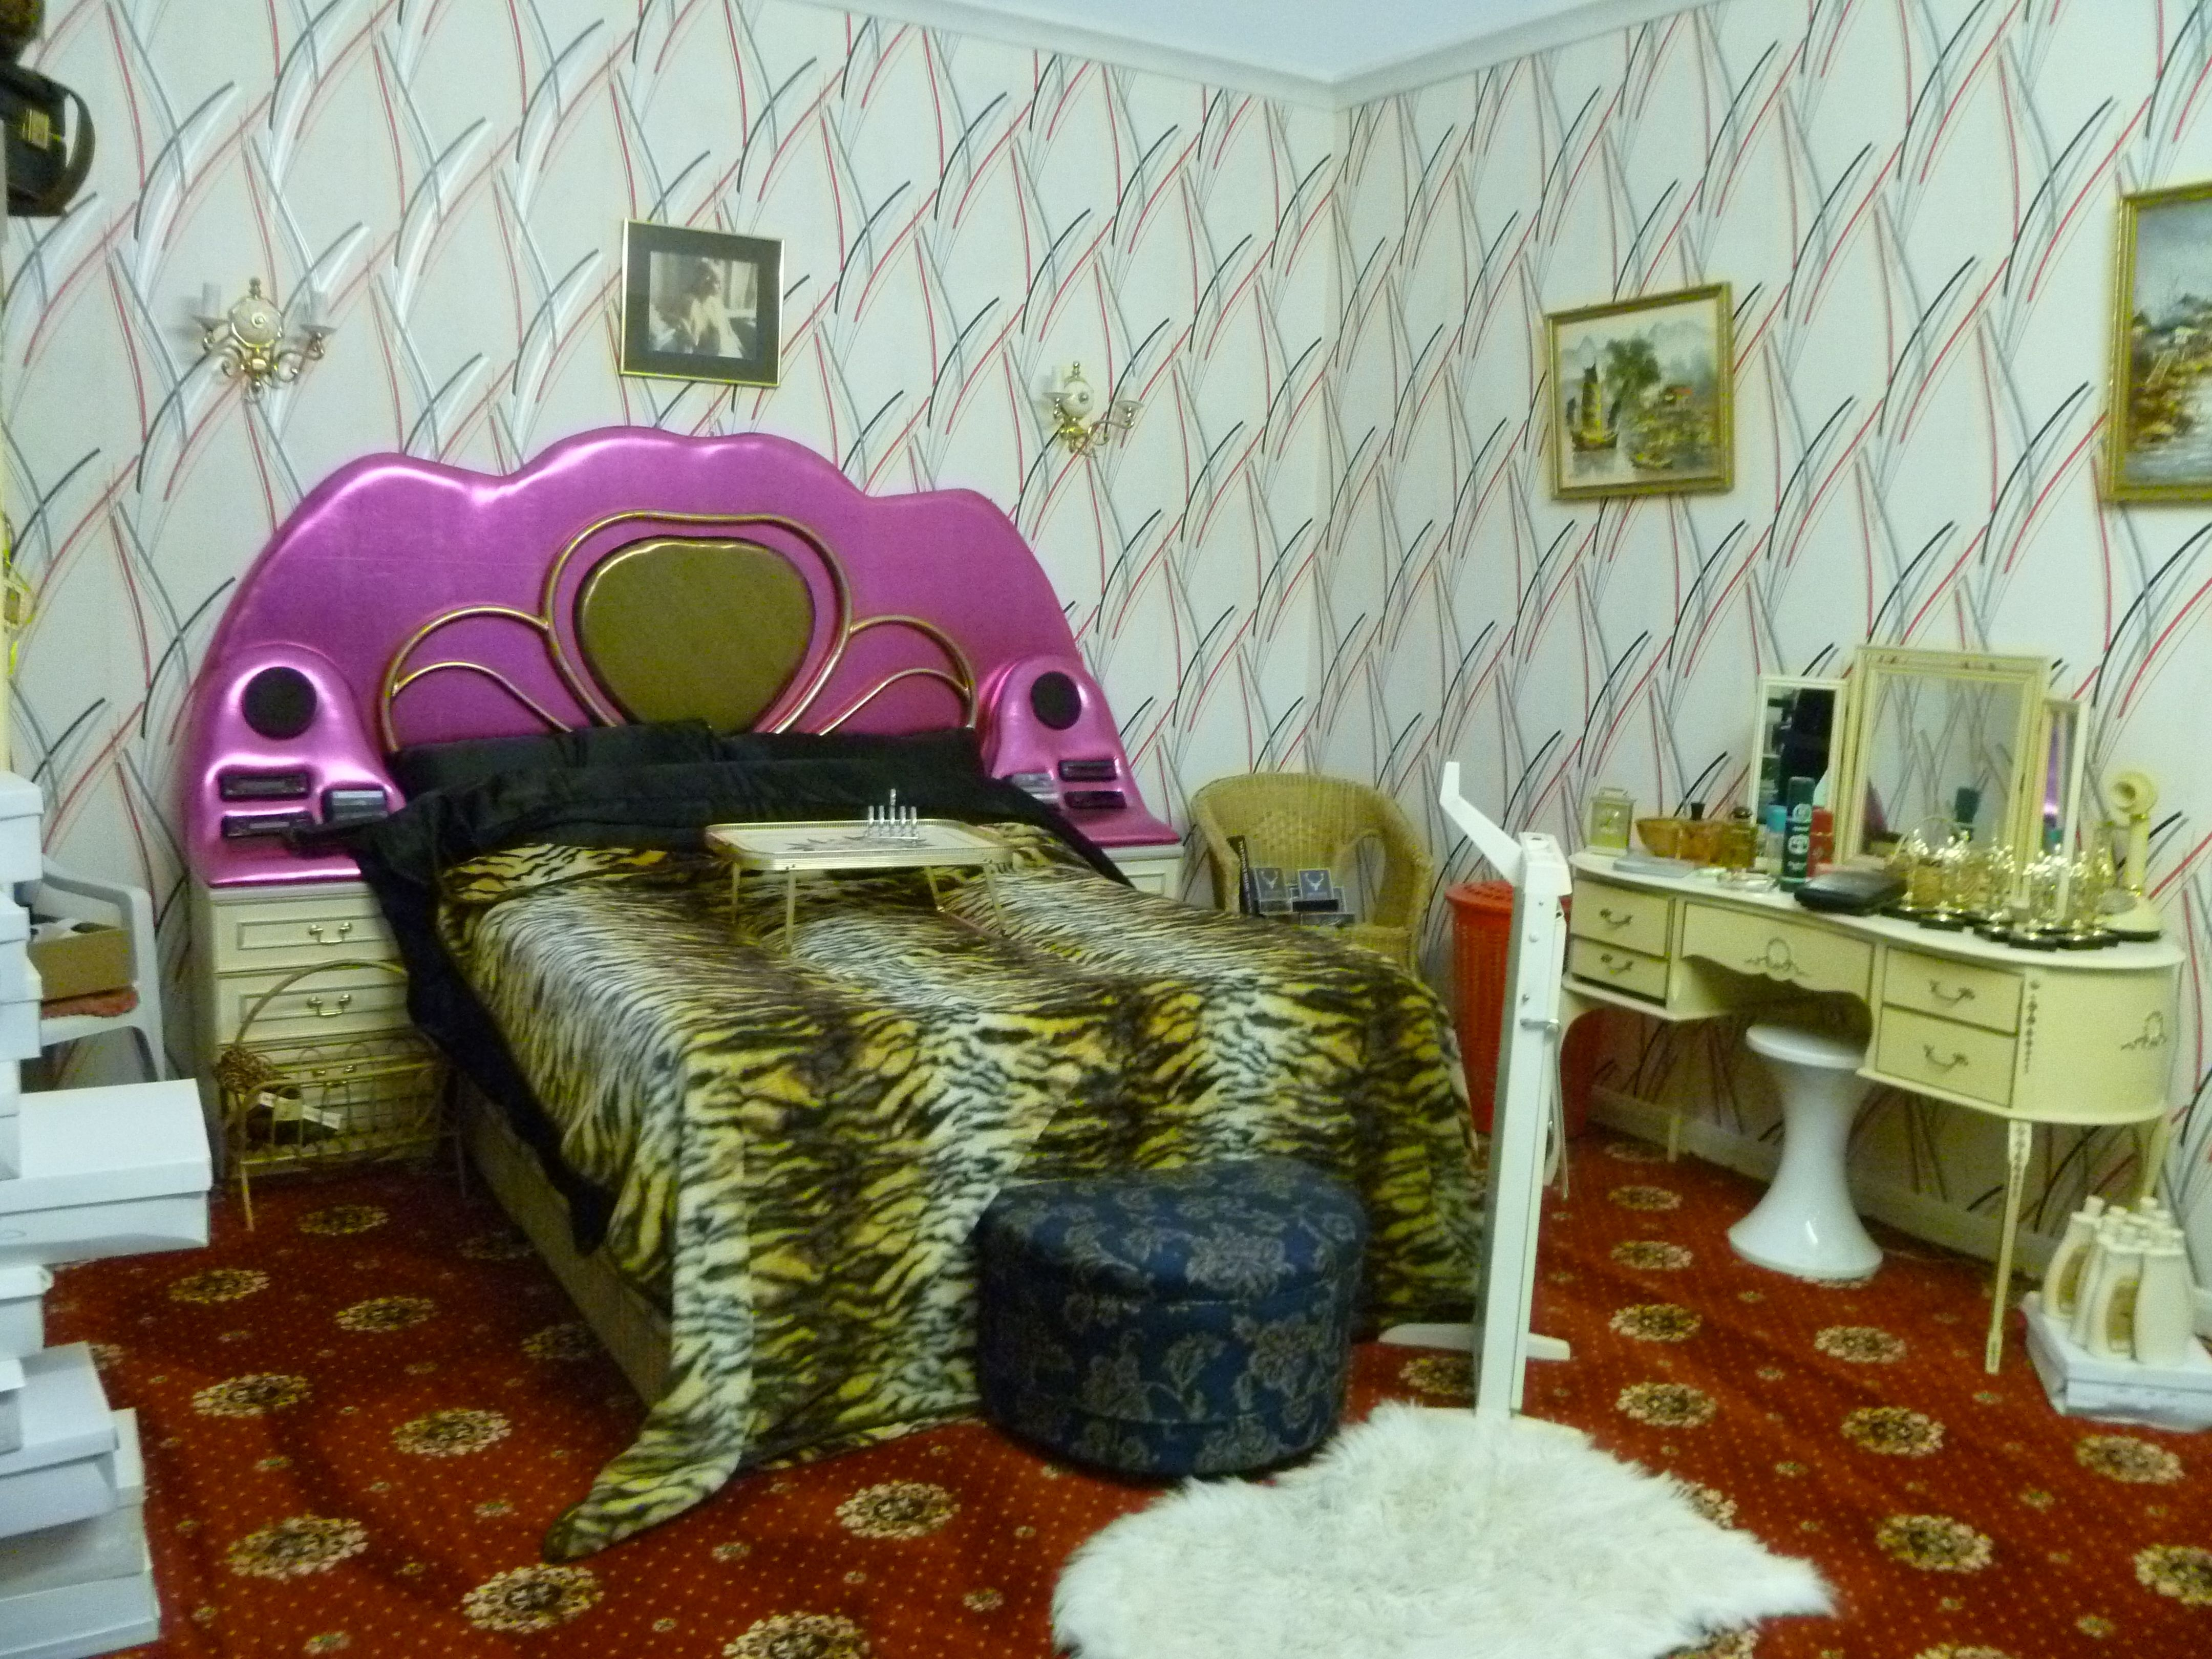 Mock ups of one bedroom two bedroom and three bedroom apartments - Hilarious Del Boy Trotter S Only Fools And Horses Bedroom Mock Up